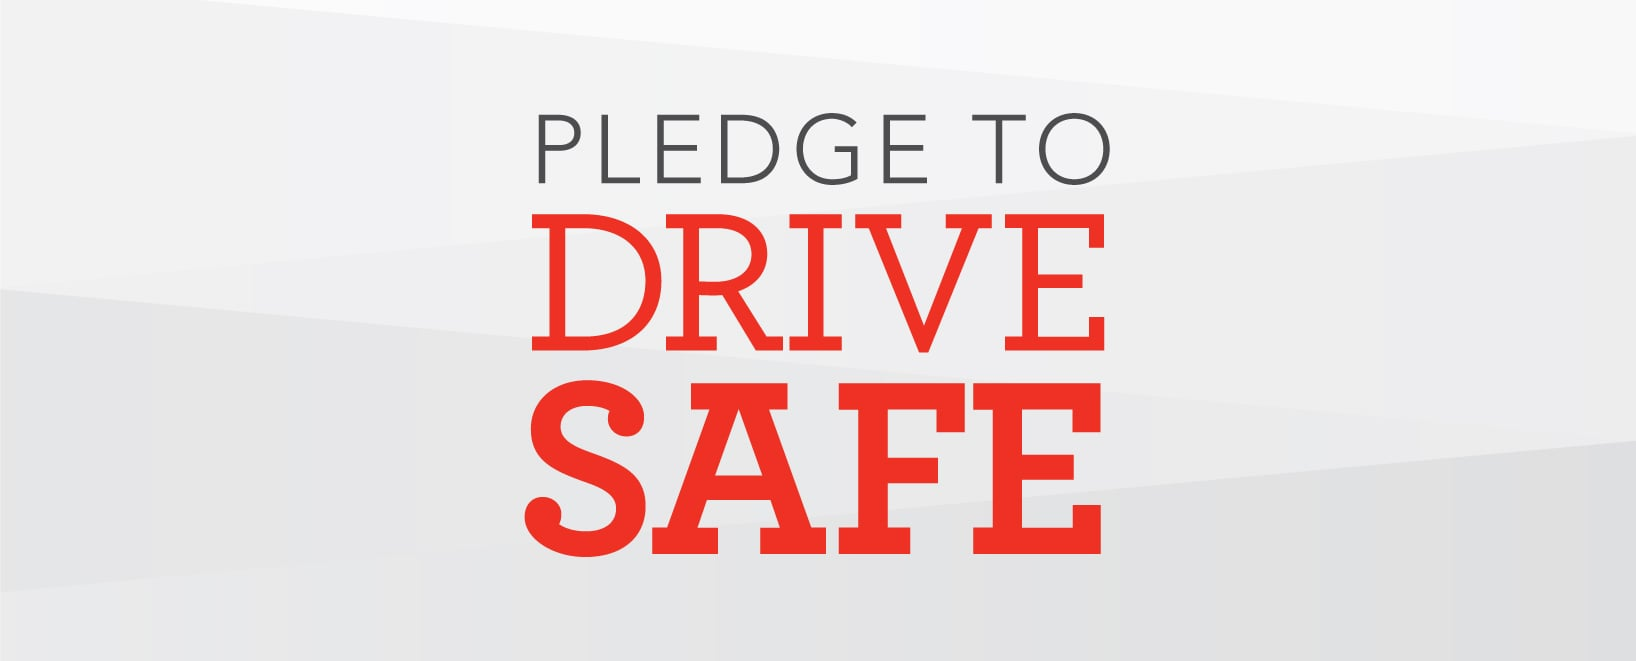 Pledge to drive safe